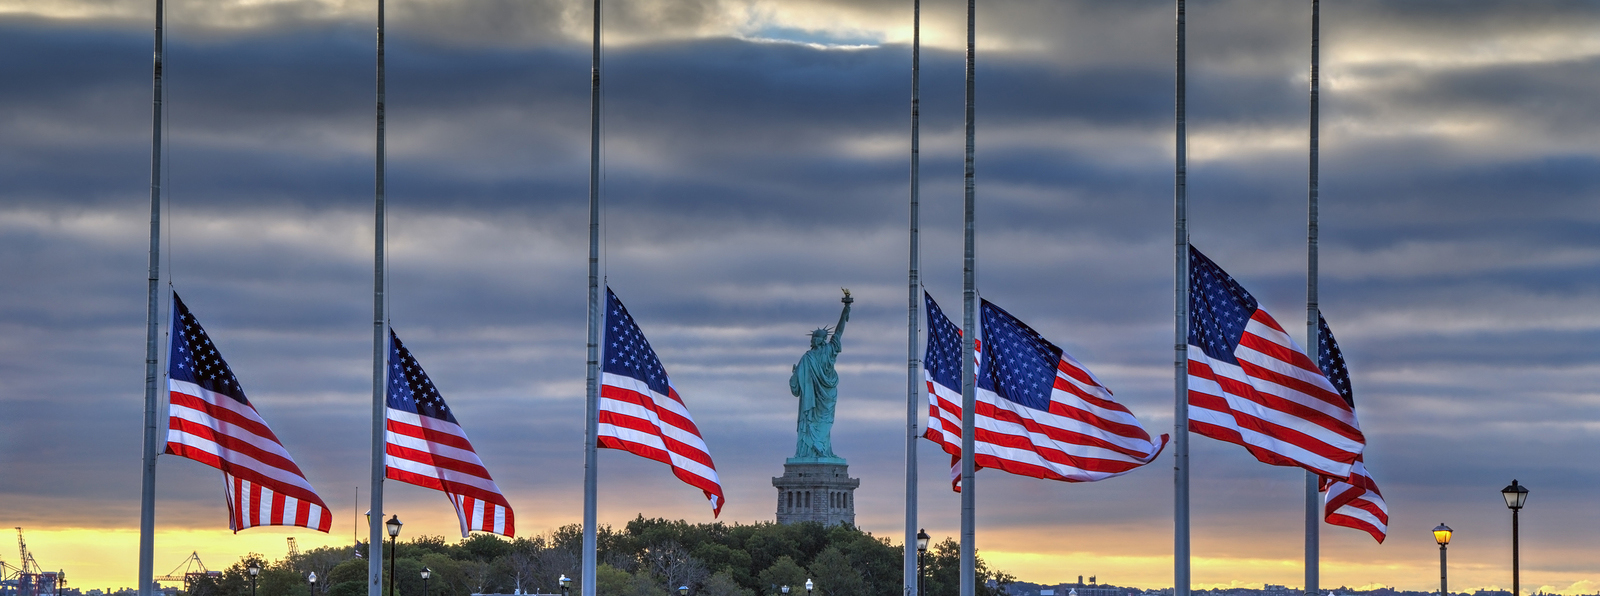 bigstock-Flags-at-half-staff-in-front-o-74578162